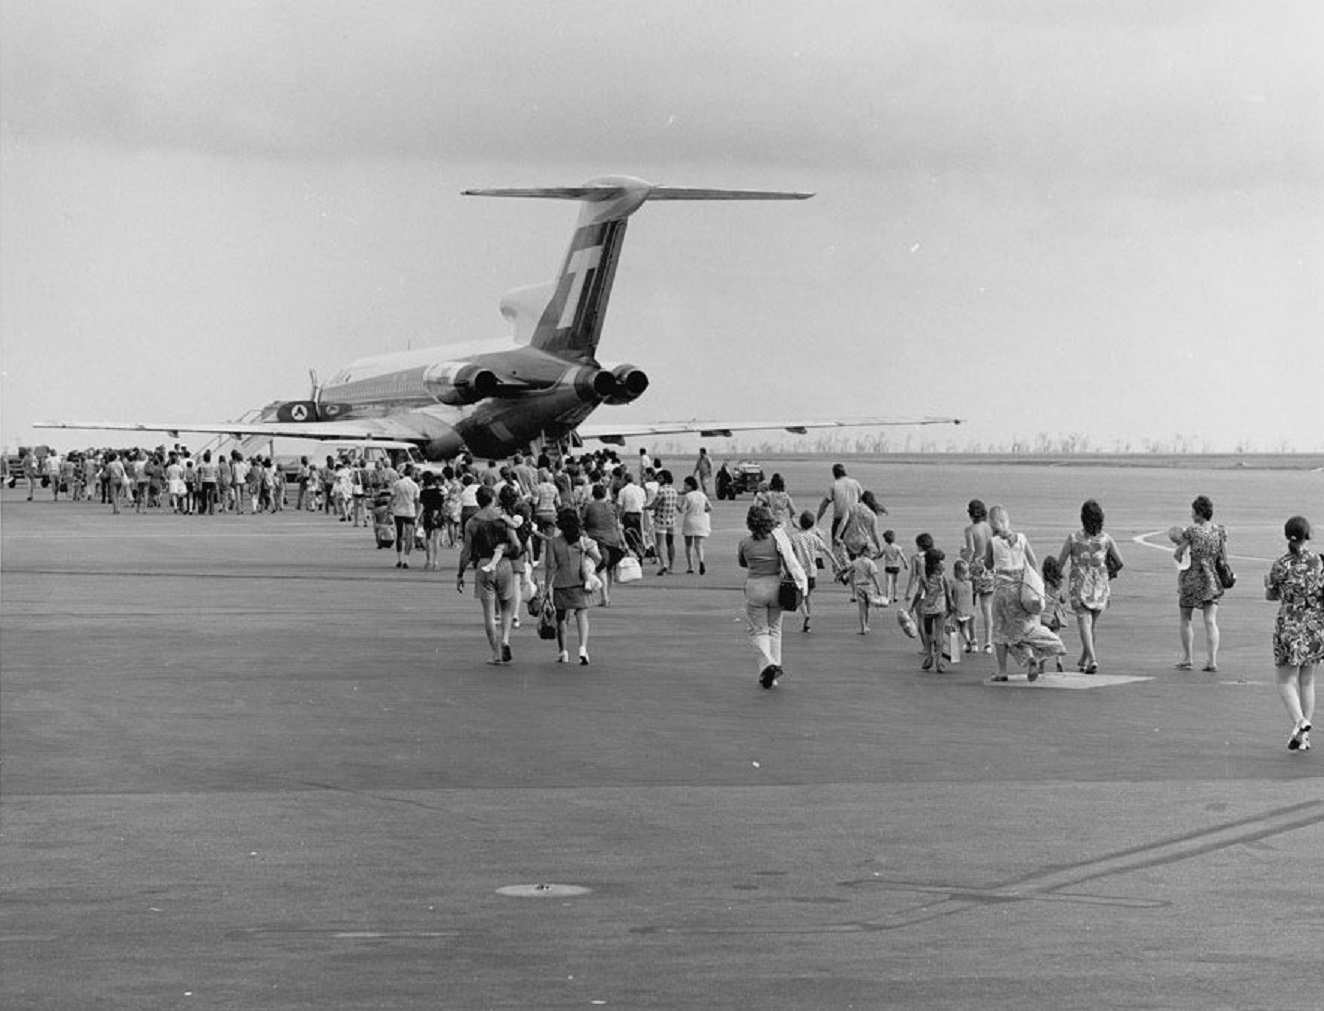 A line of evacuees boarding a TAA plane at Darwin airport